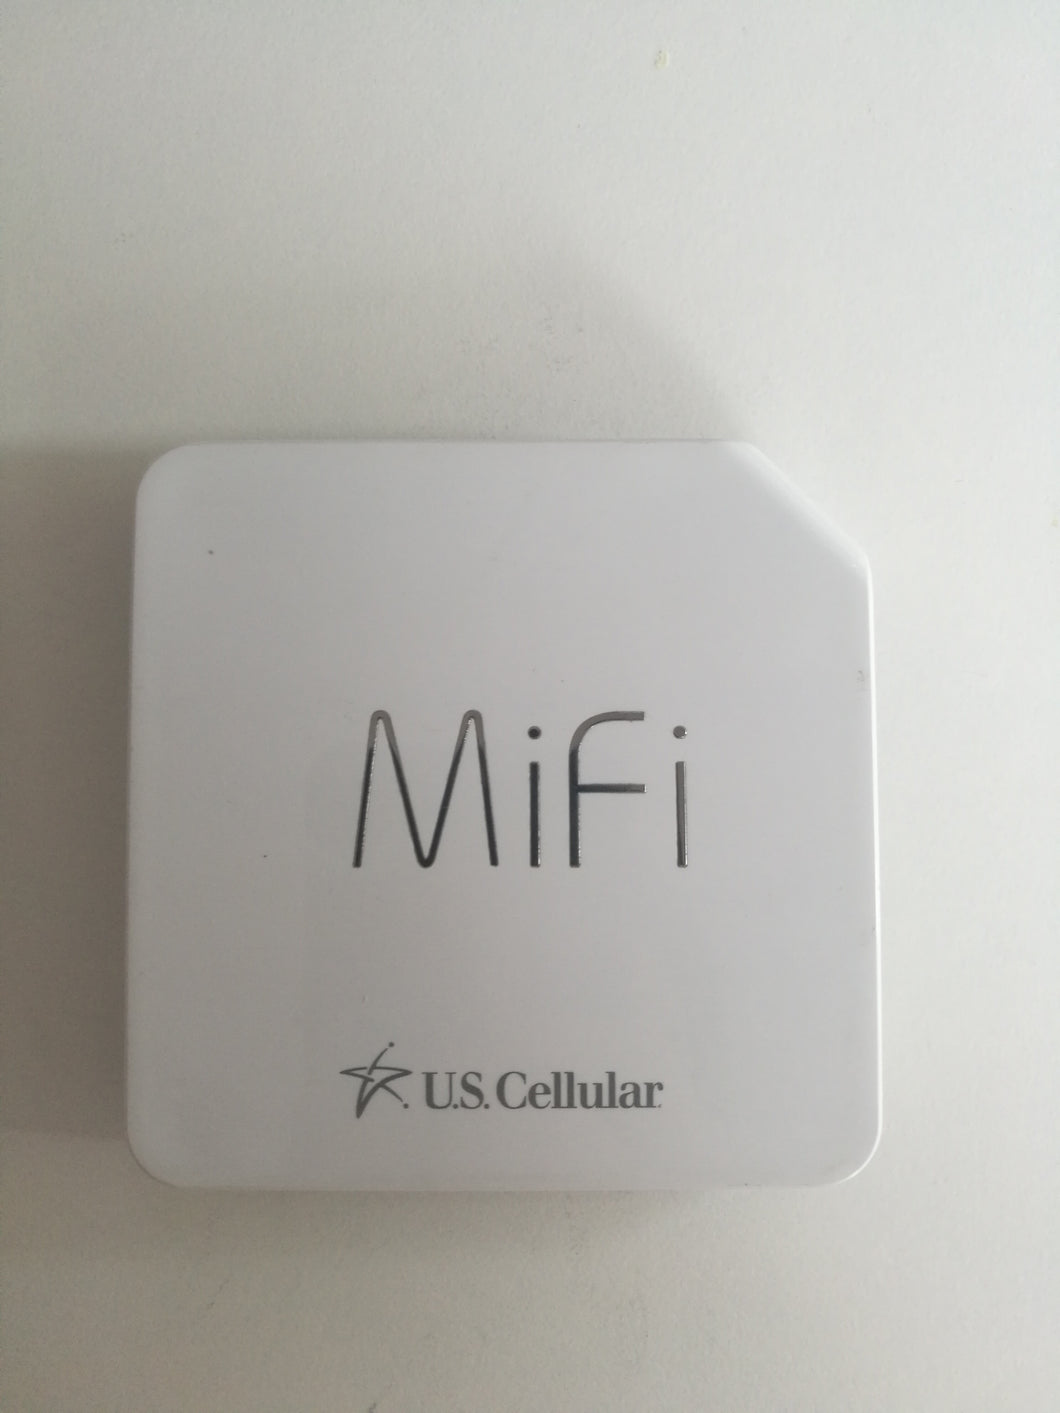 Details about  Novatel Wireless (US Celluar) MiFi M100 4G LTE Band 2,4,5,12,17 Mobile Hotspot Ship from China